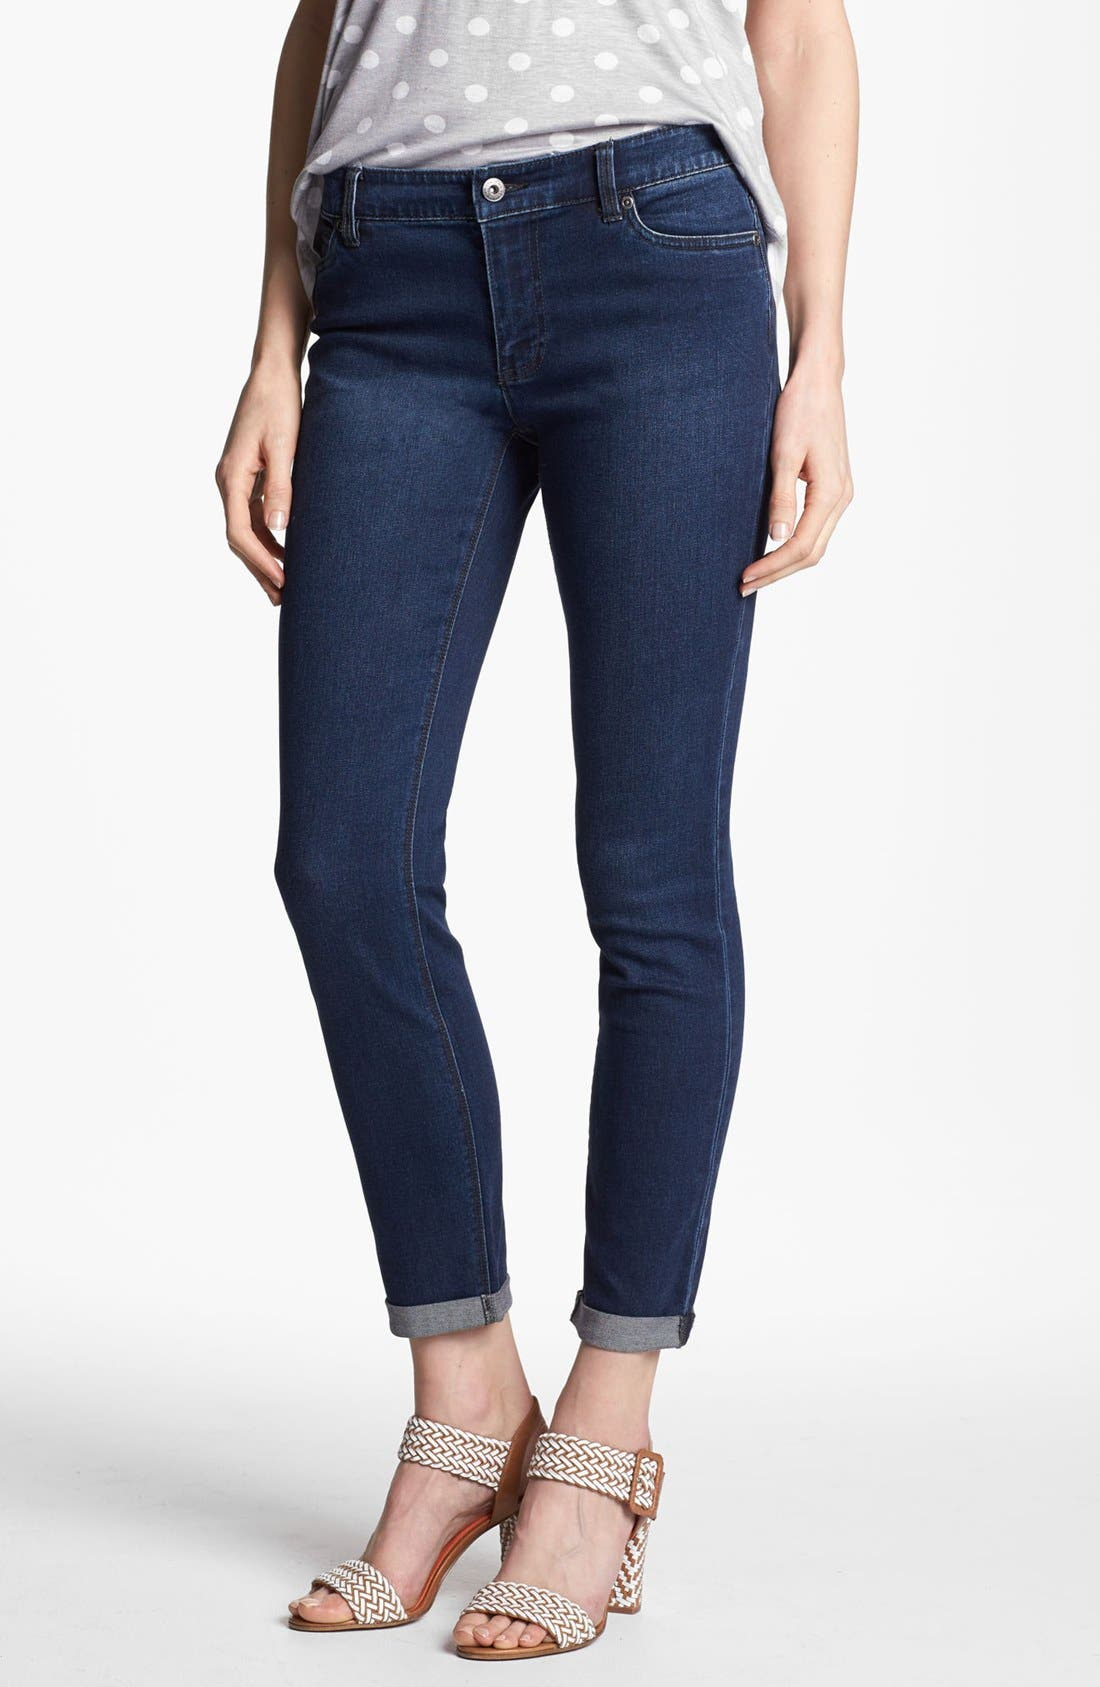 Alternate Image 1 Selected - Two by Vince Camuto Cuff Crop Jeans